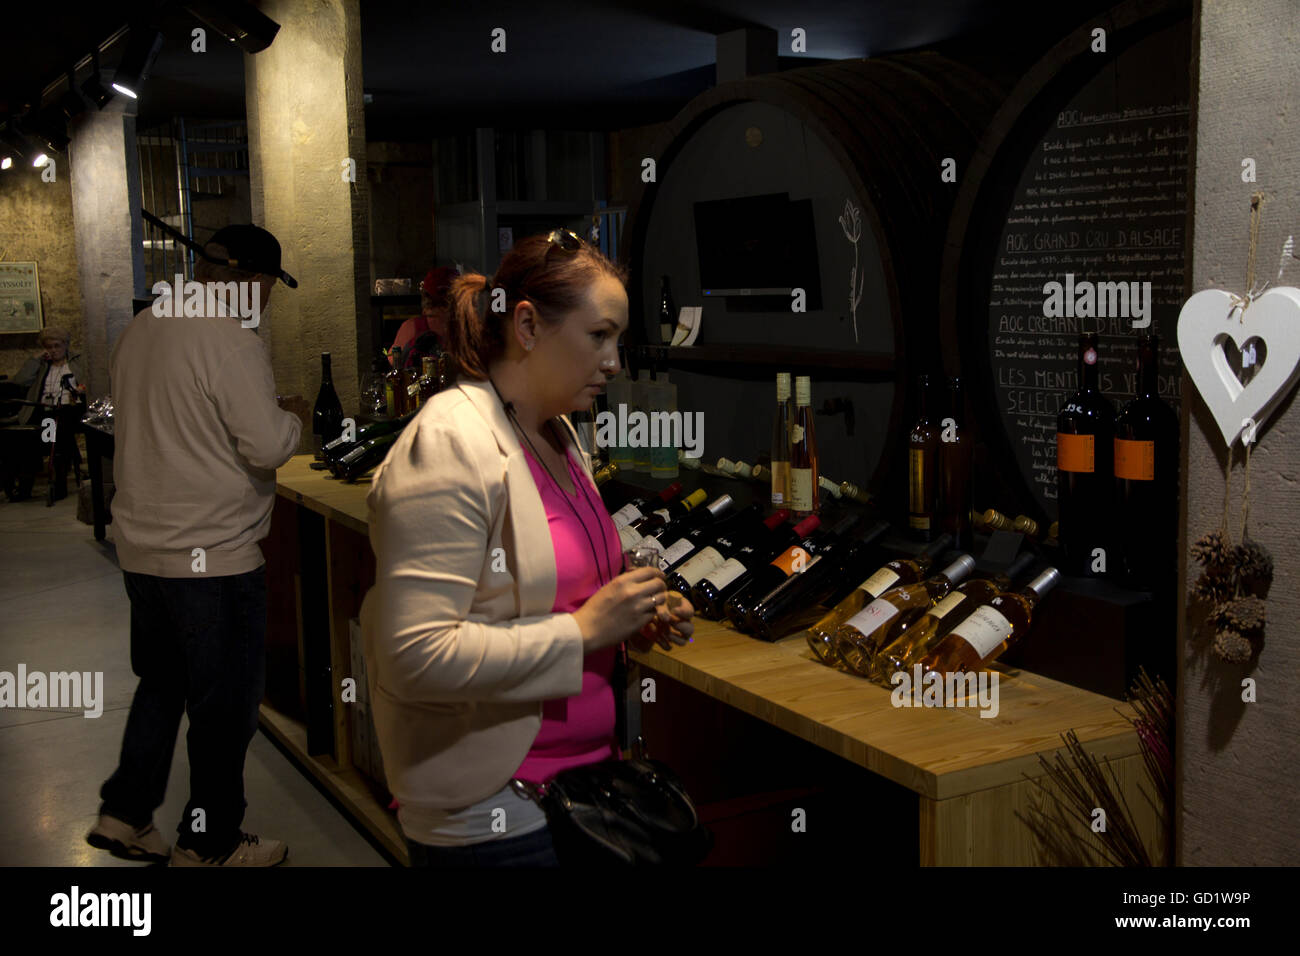 Visitors peruse selections of Alsatian wines at Zeyssolff Winery in Gertwiller, France. - Stock Image